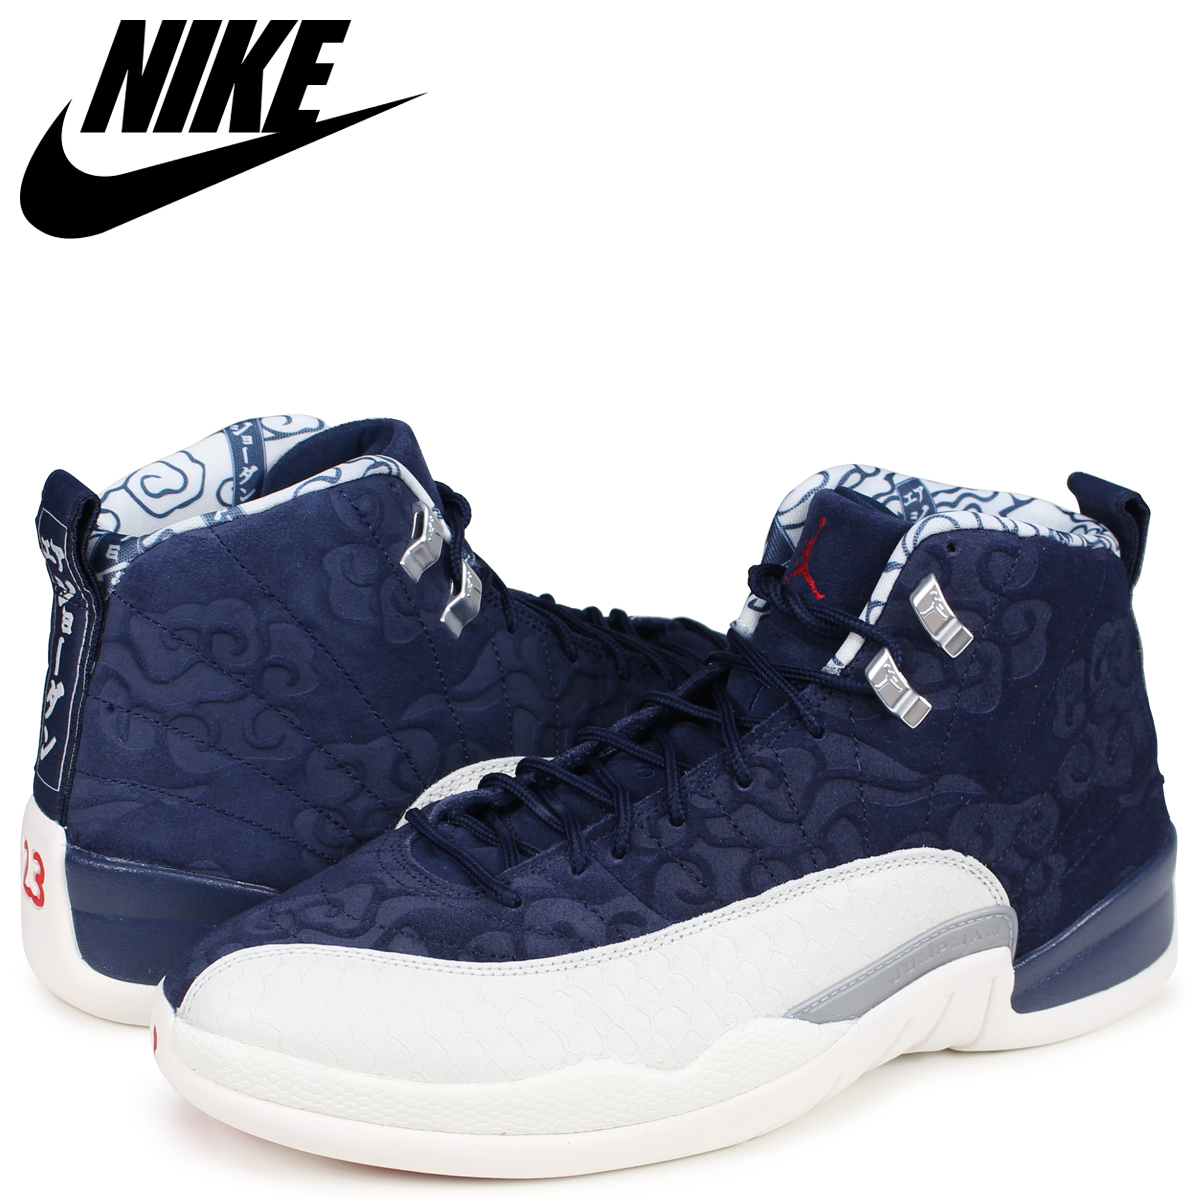 online store d5d1b fed6b NIKE AIR JORDAN 12 RETRO INTERNATIONAL FLIGHT Nike Air Jordan 12 nostalgic  sneakers men BV8016- ...